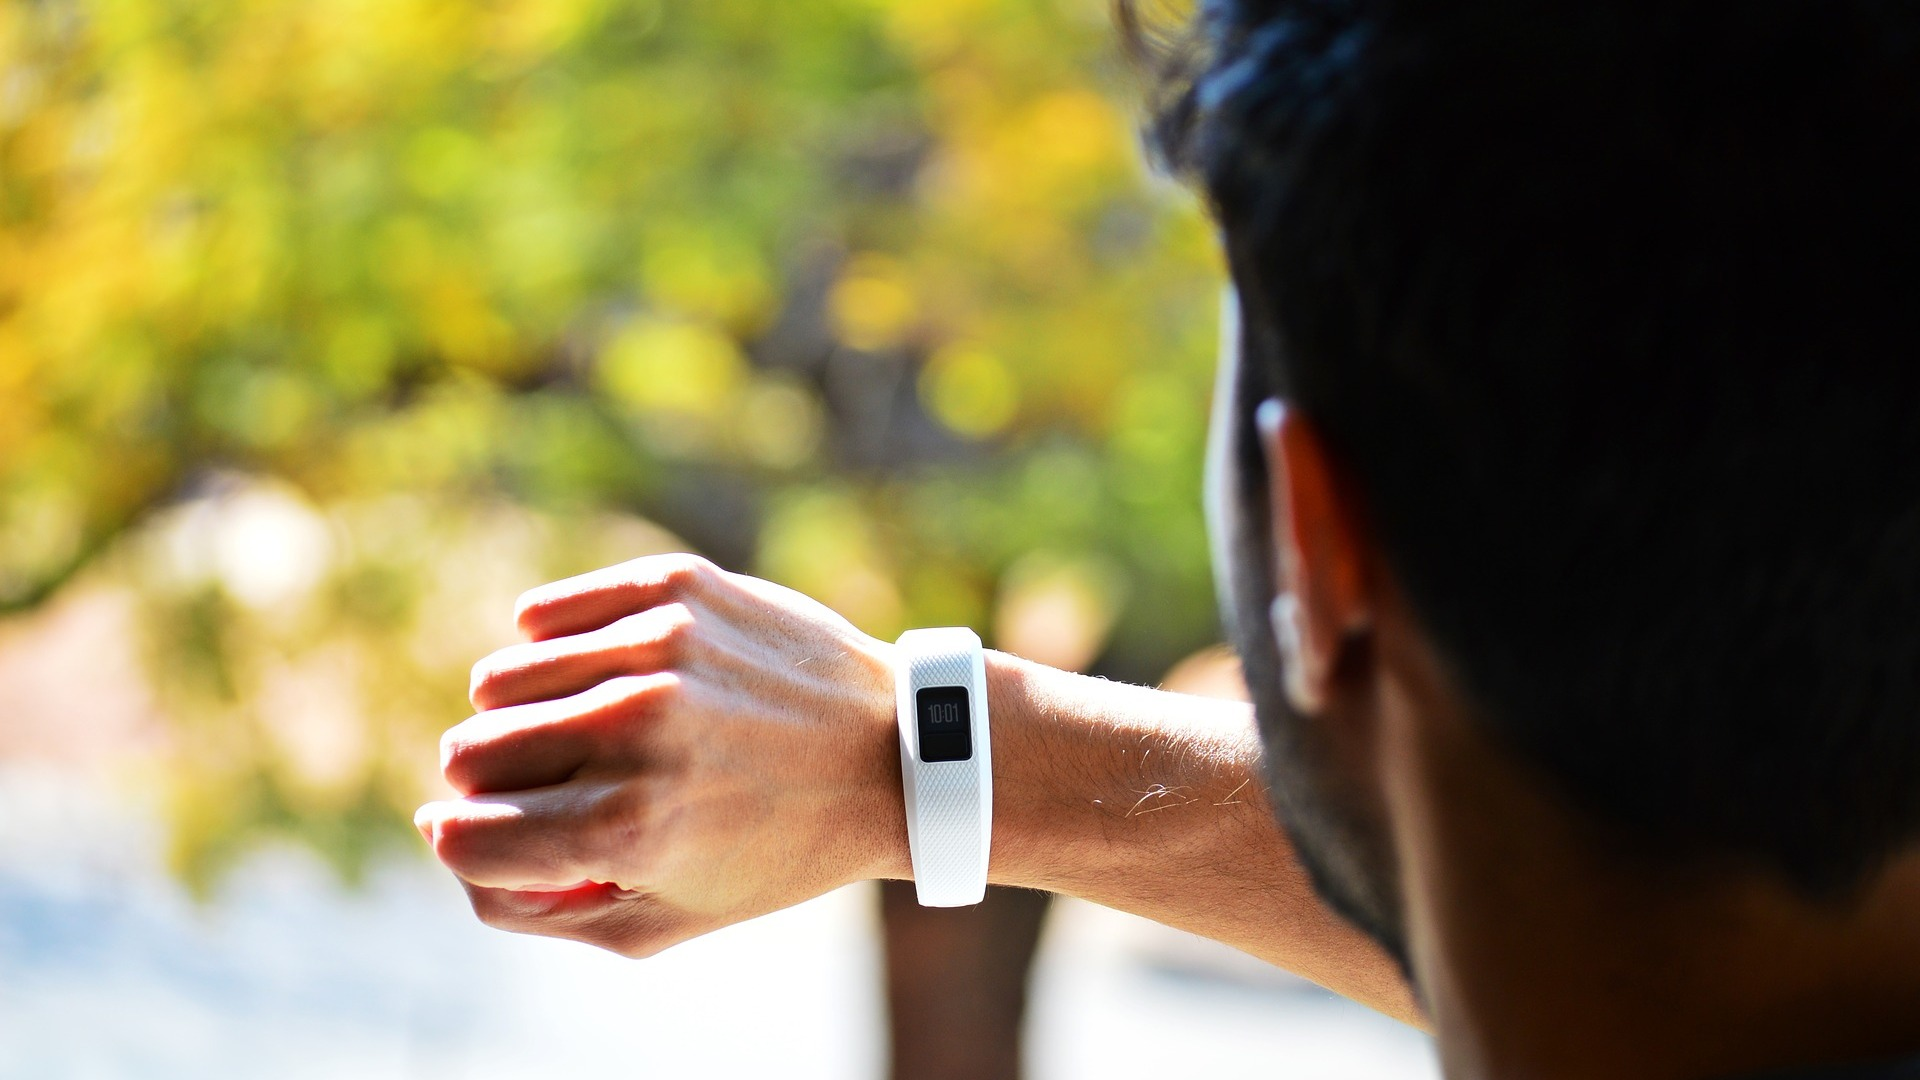 Indian market forwearable devices at an all-time high: report